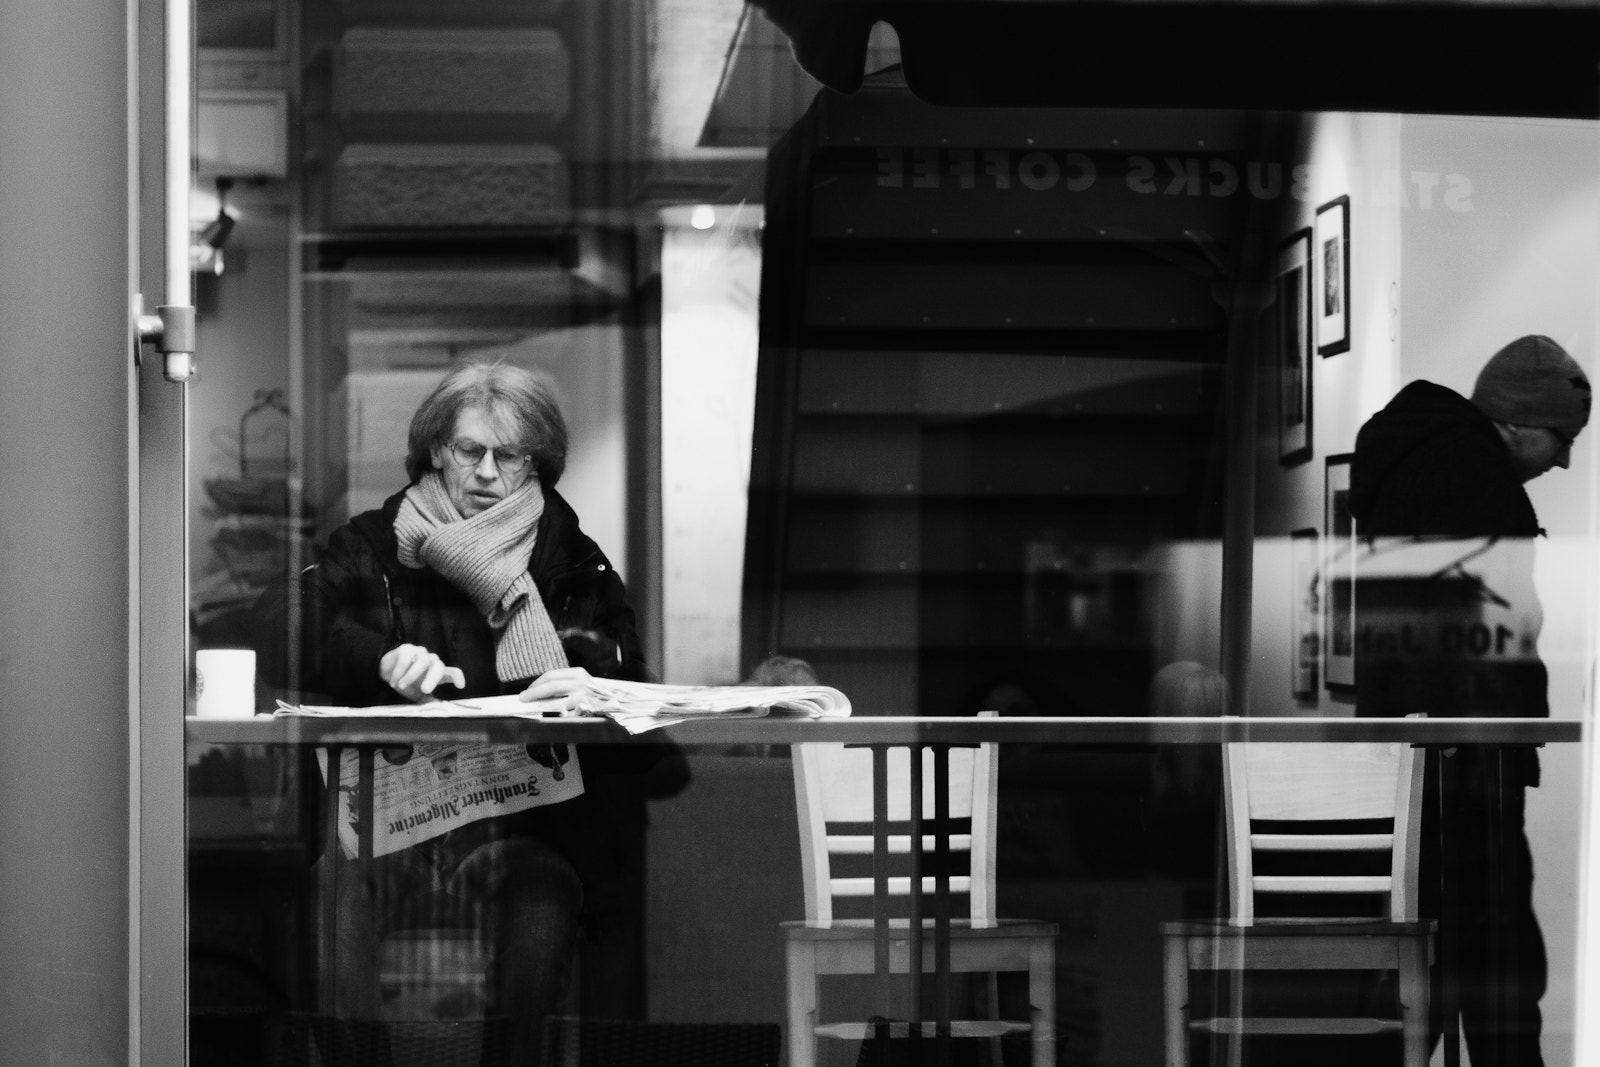 Photograph Coffeeshop by Thomas Meyer on 500px